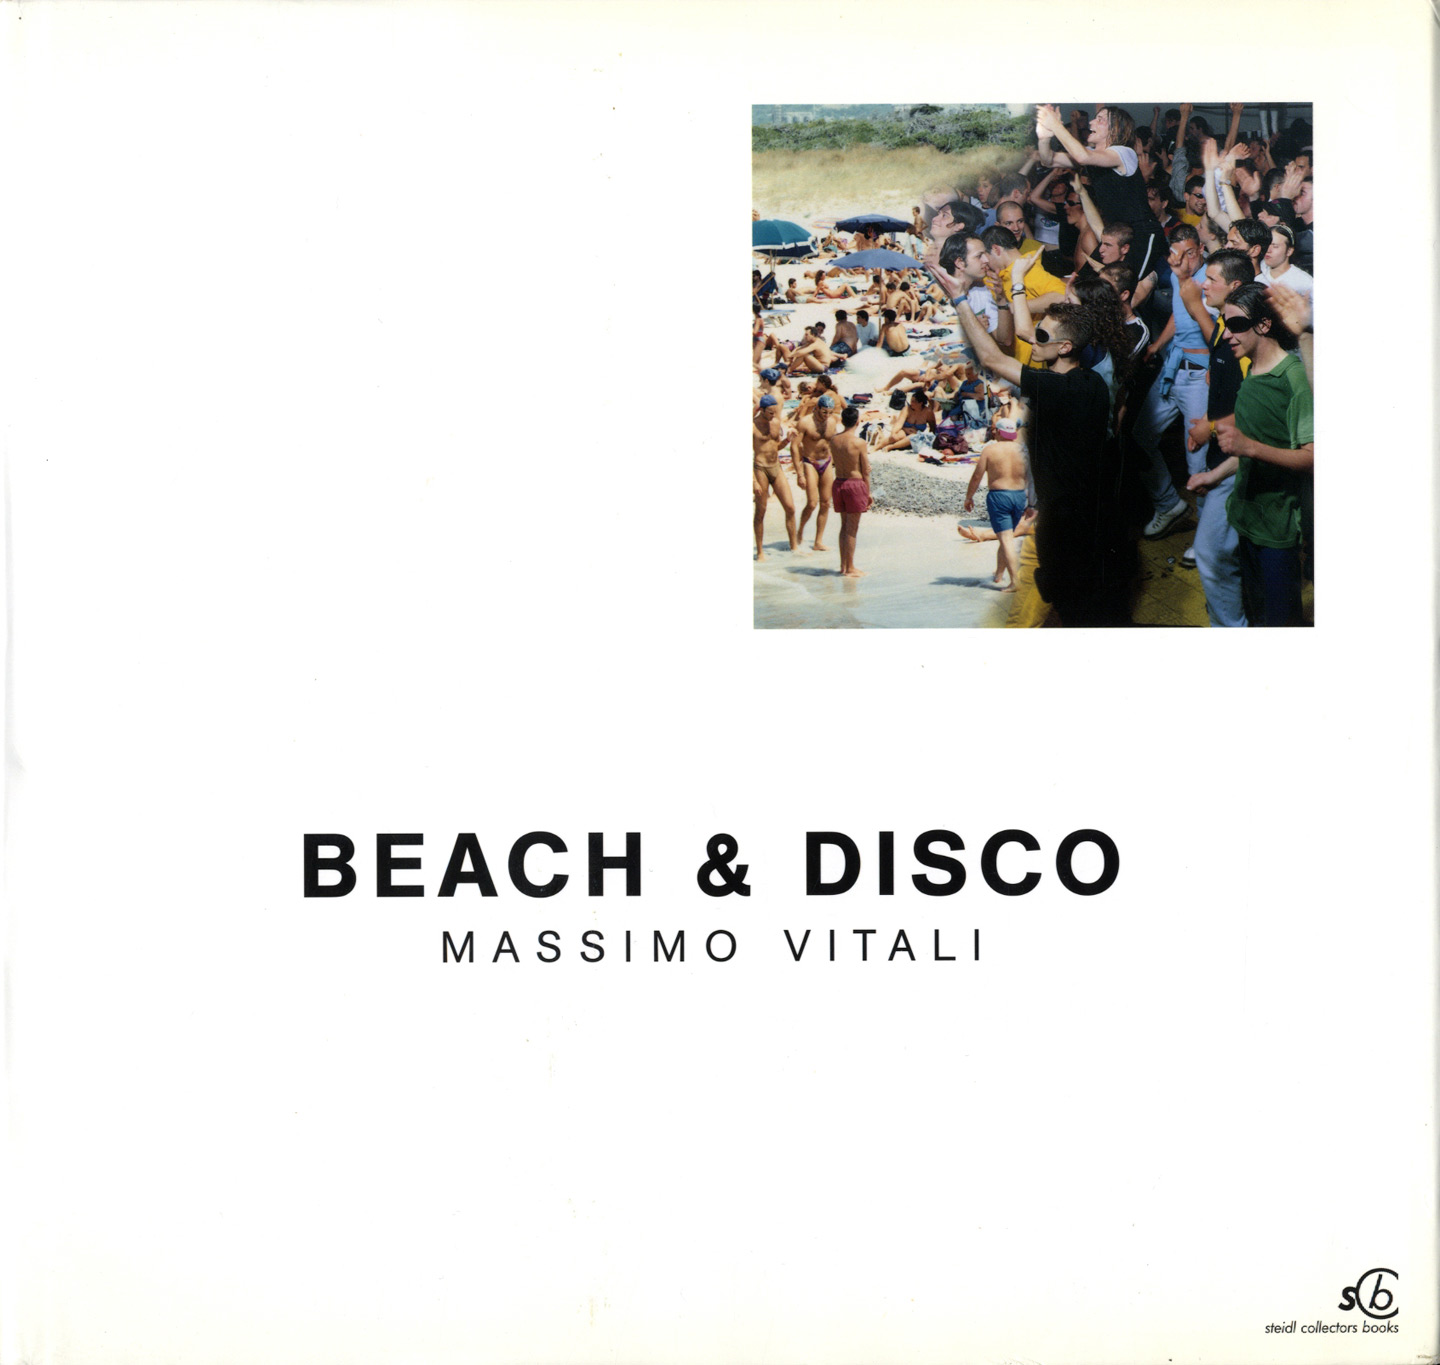 Massimo Vitali: Beach & Disco (Steidl Collectors Books)